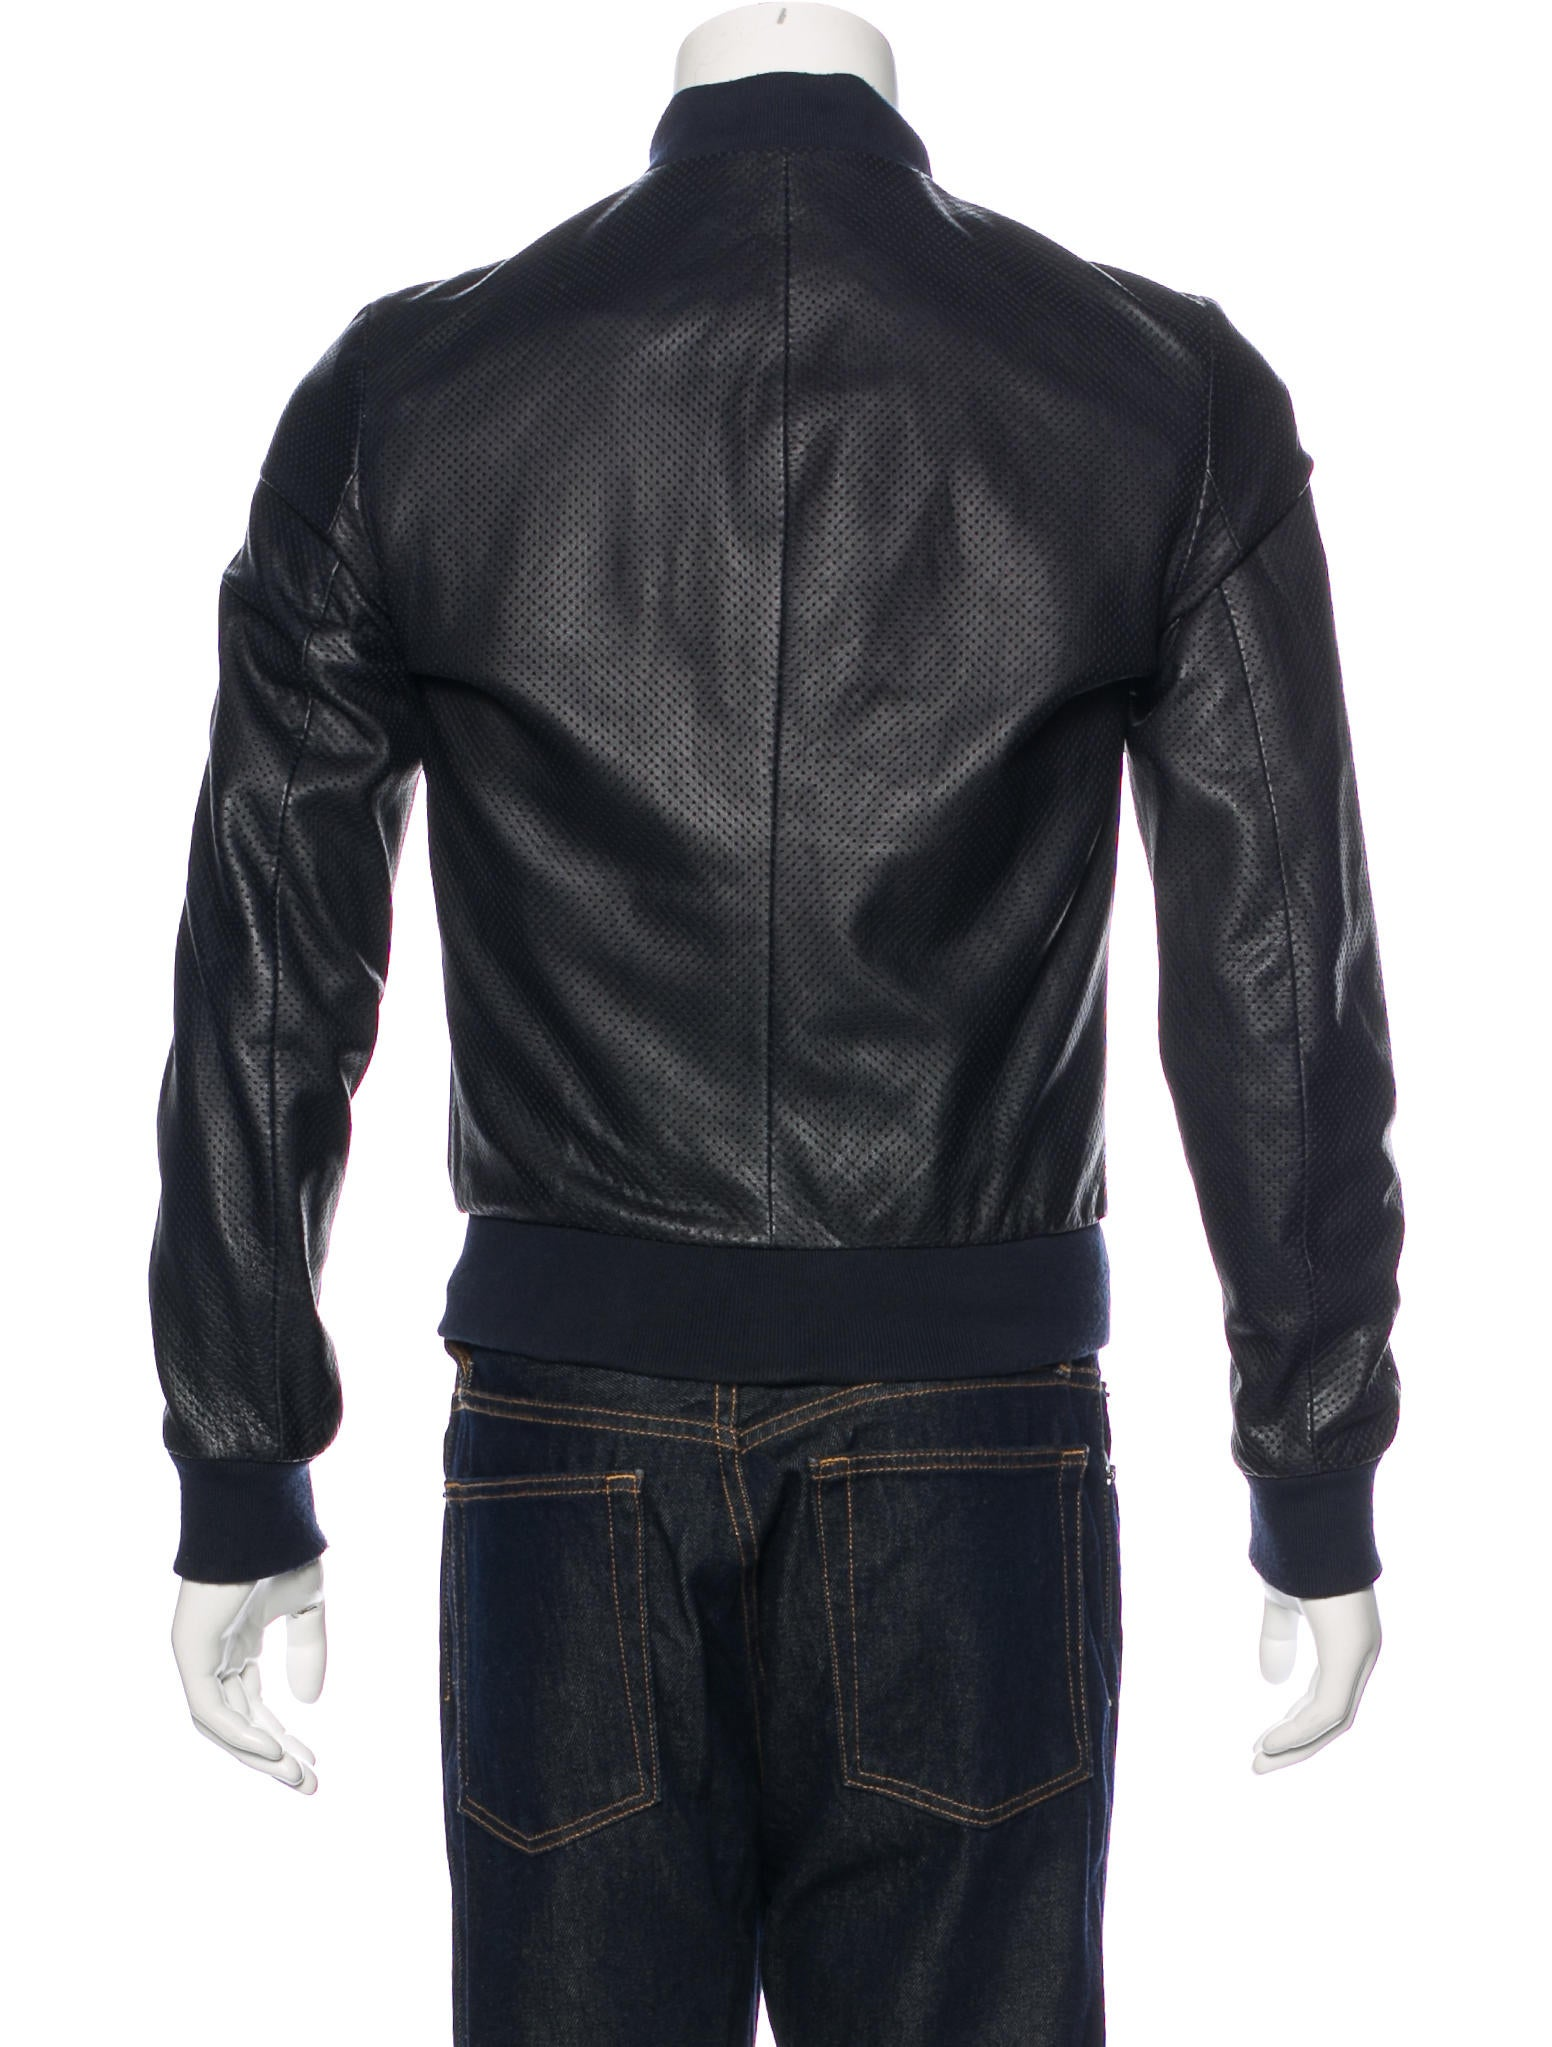 Perforated leather jacket